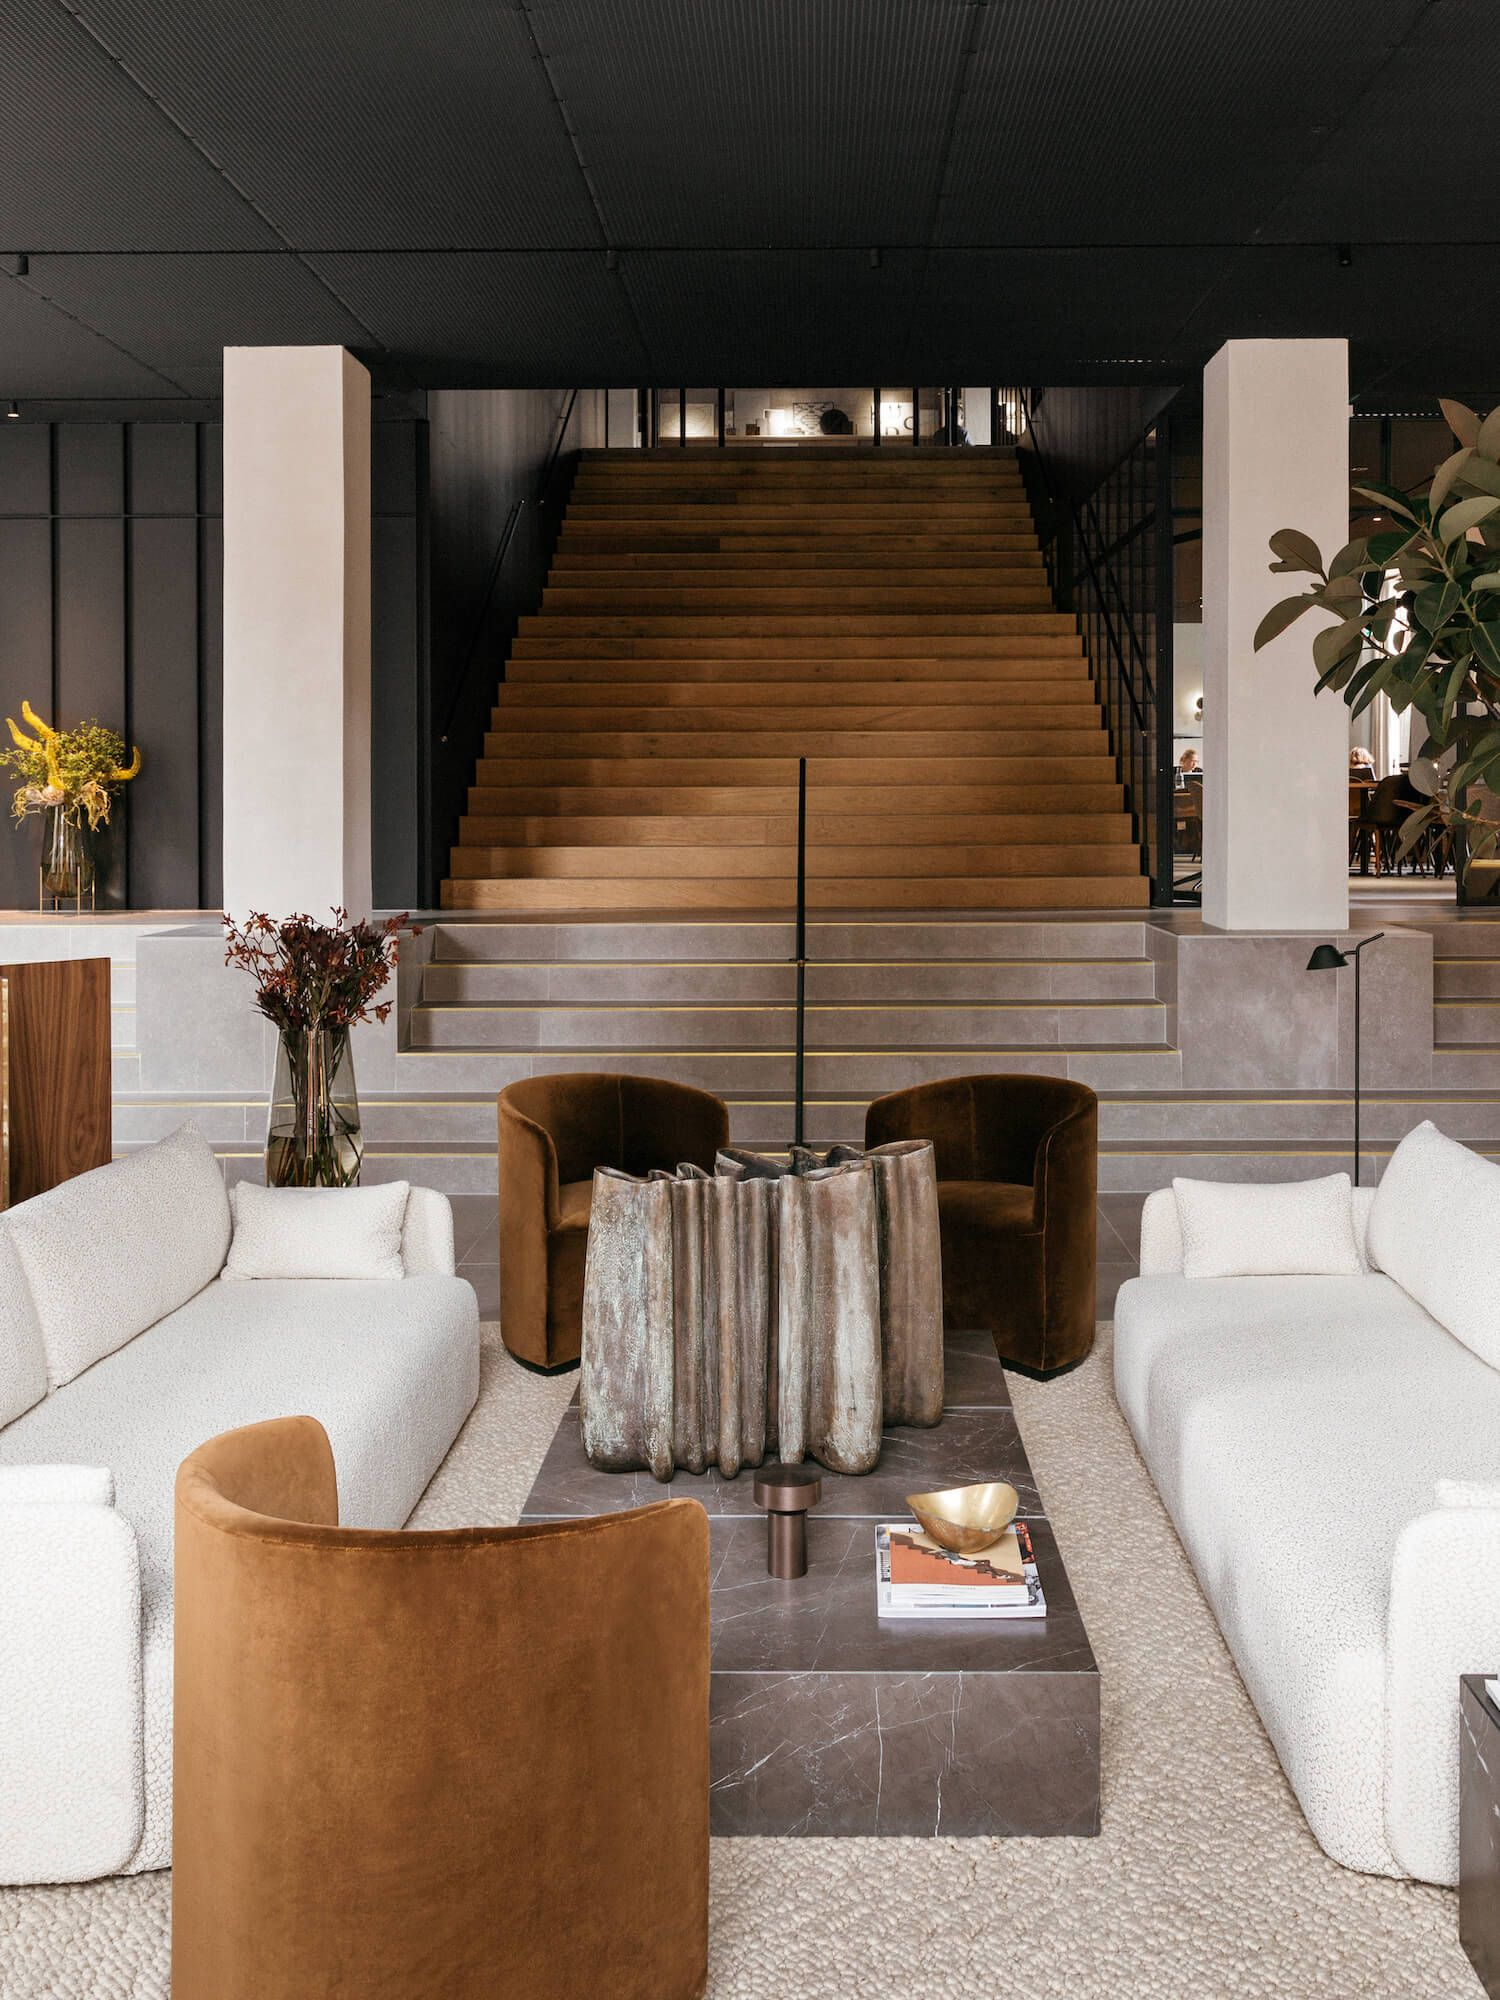 The Audo By Norm Architects Hotel Concept Scandinavian Hotel Hotels Design